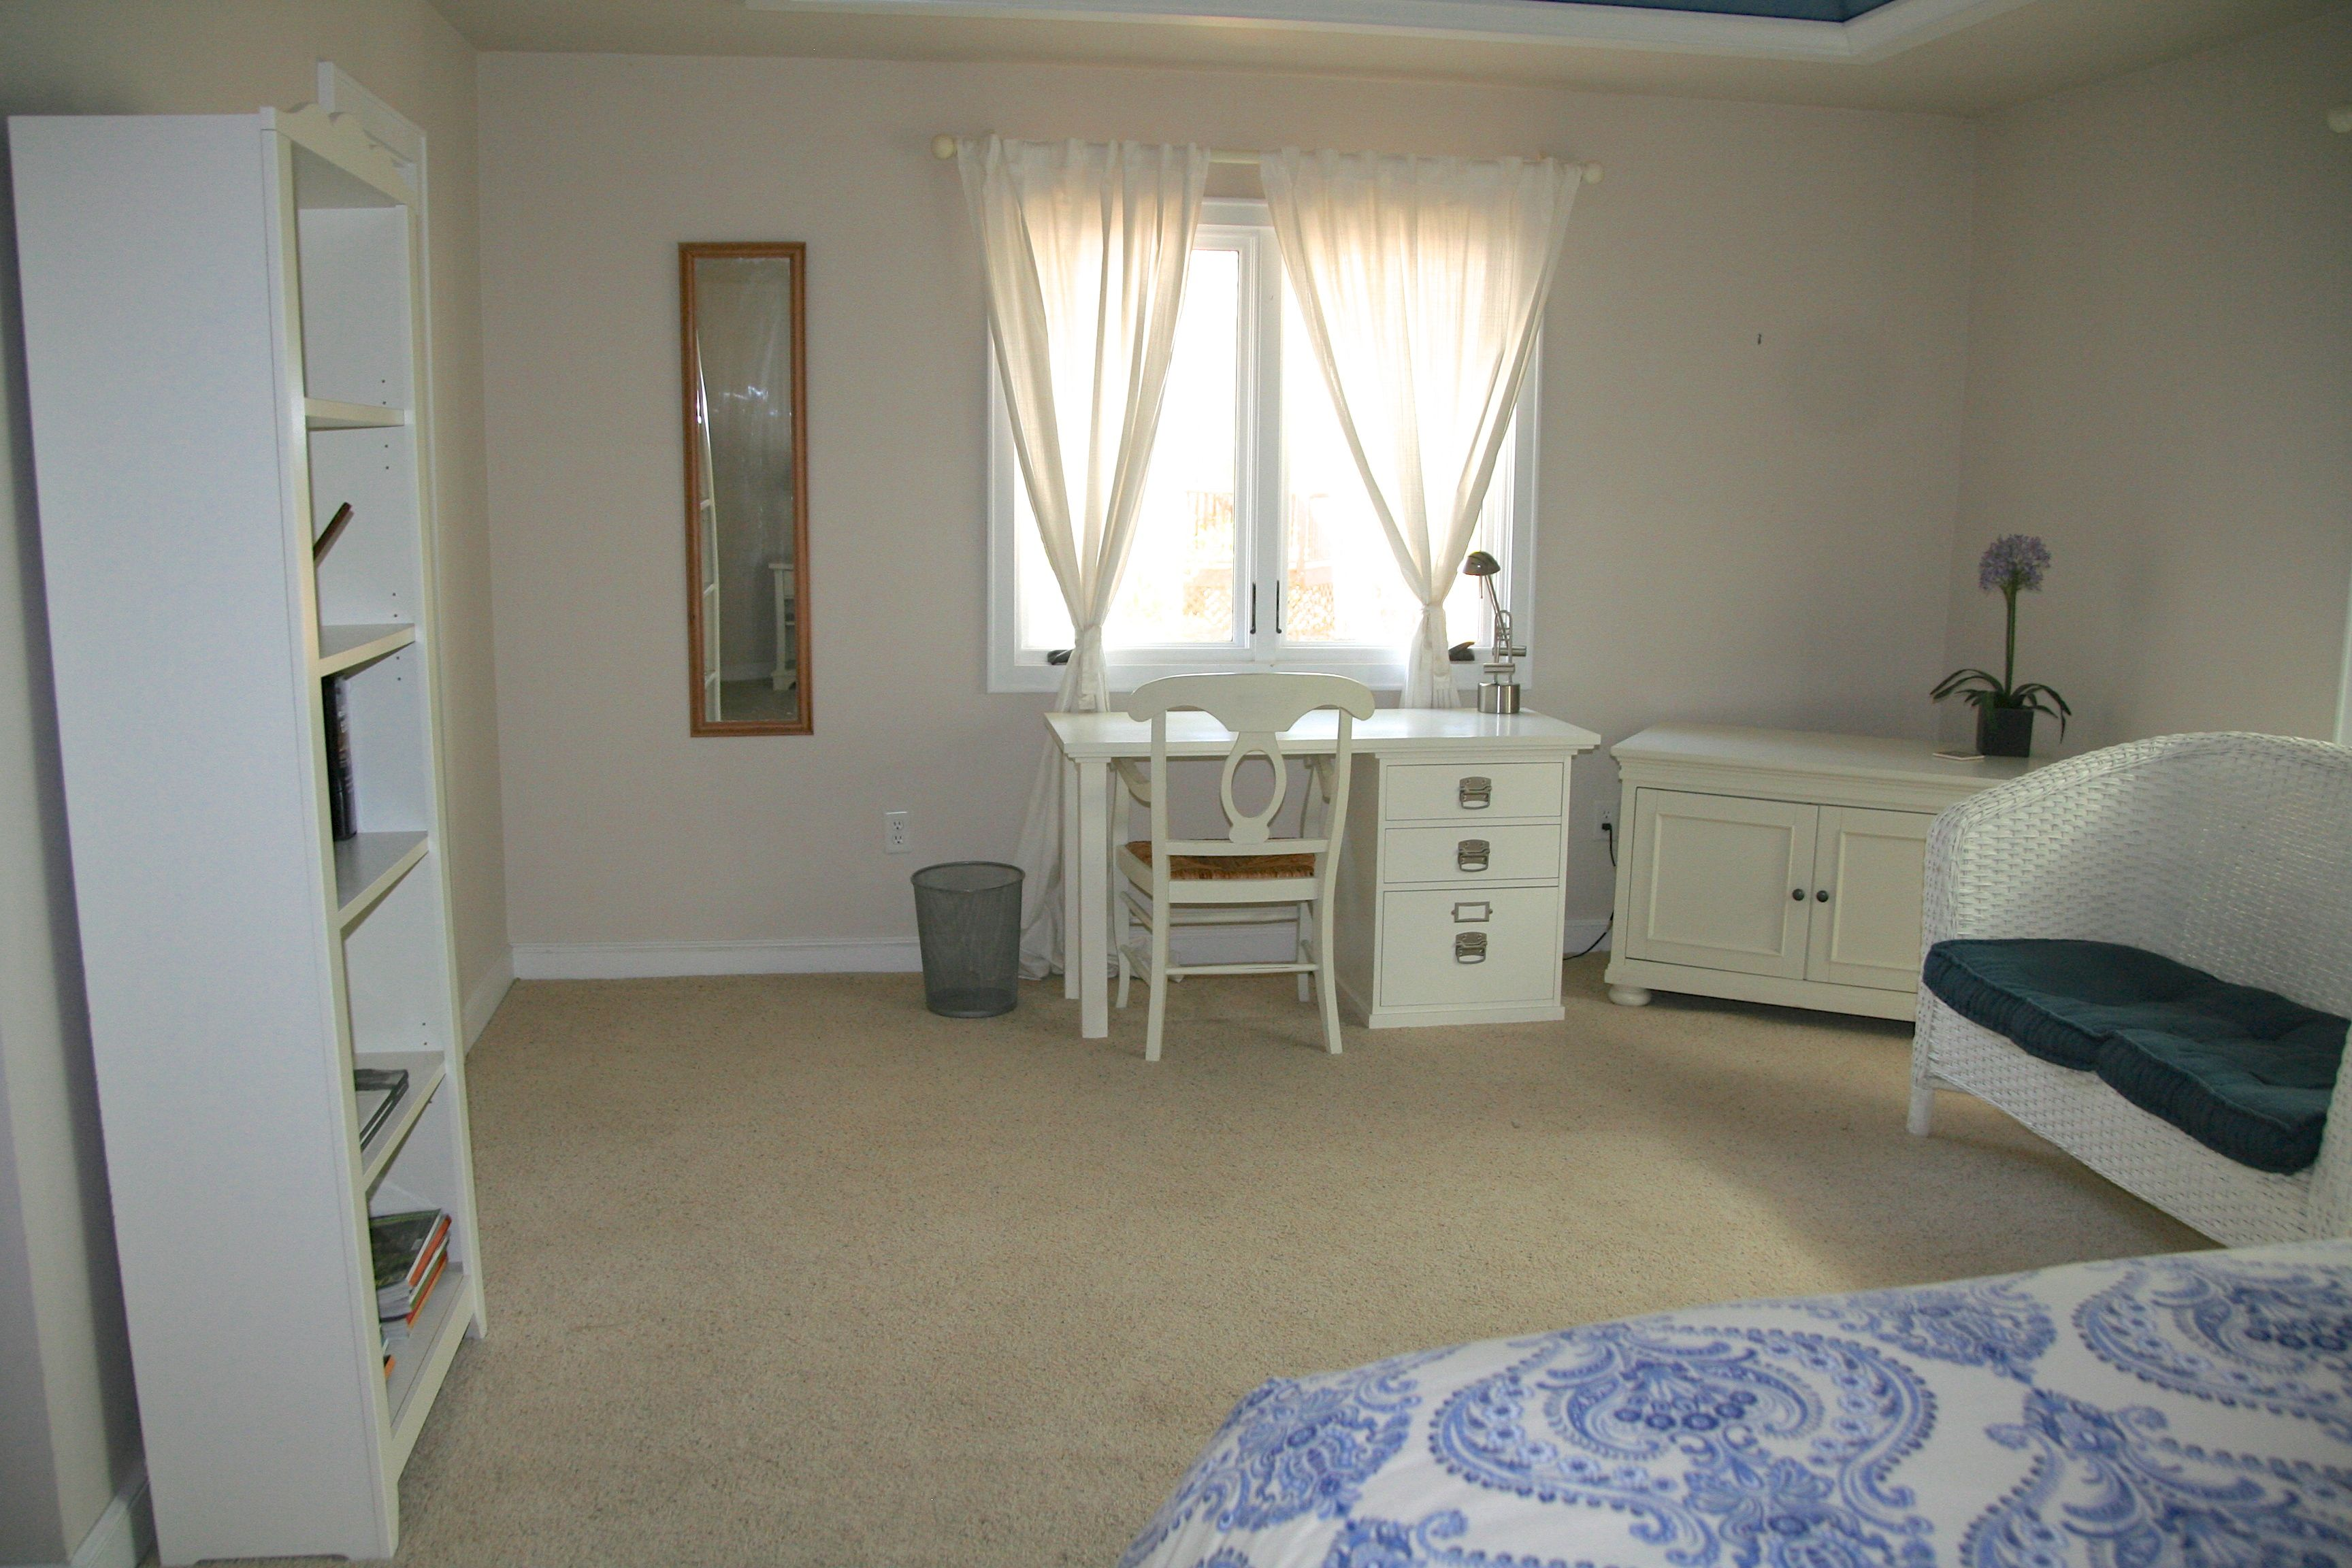 There are two walk-in closets in the master bedrom, and a desk for your computer.